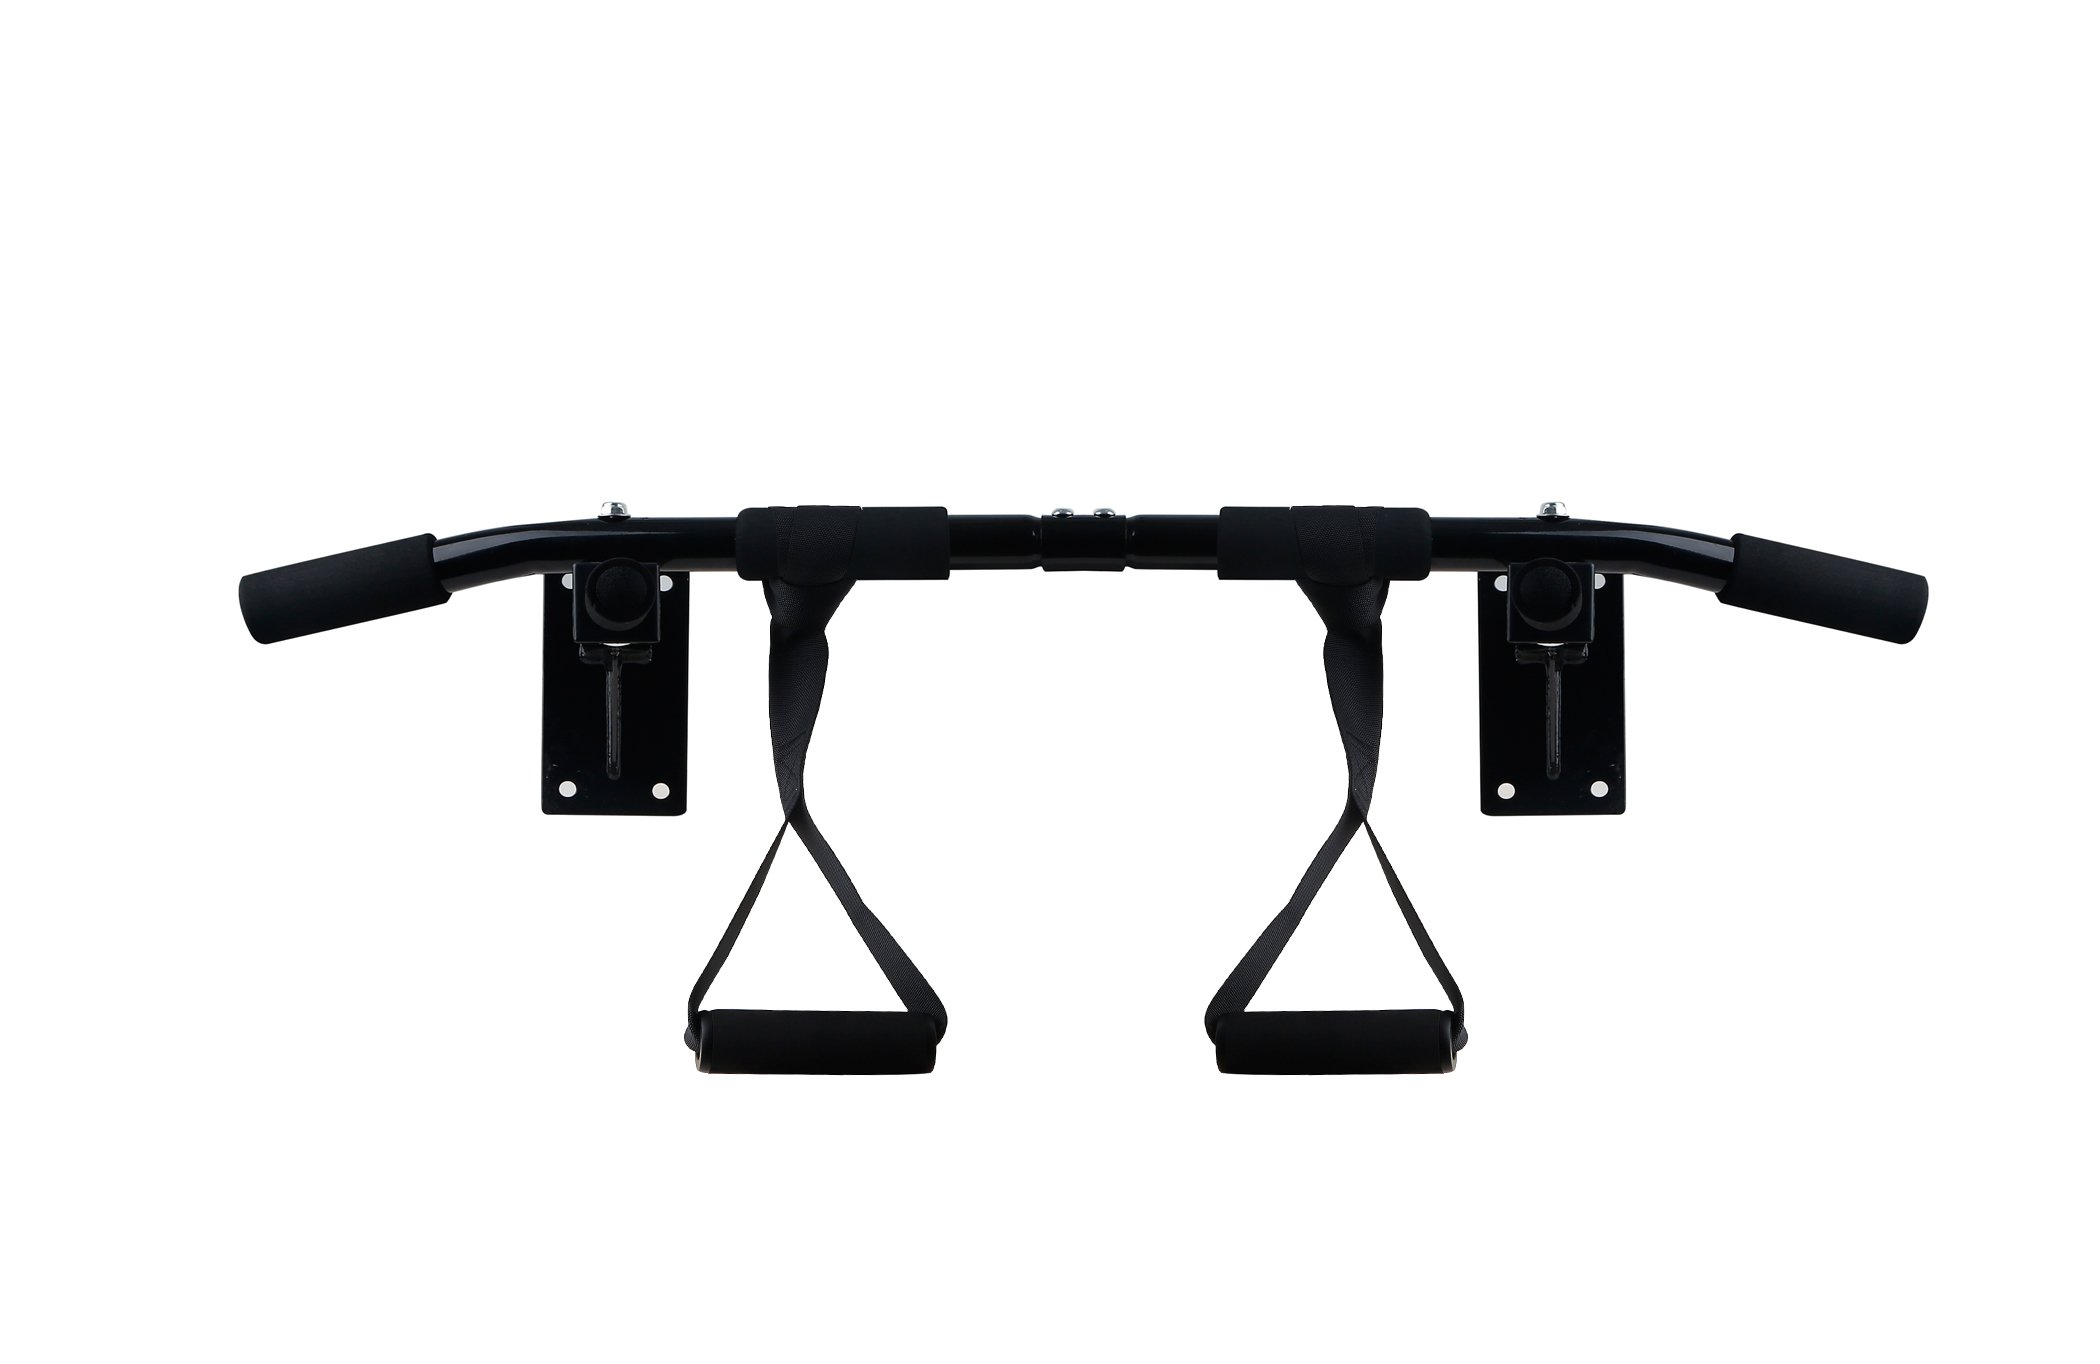 Black Marlin Pull Up Bar (Chin Up Bar) - Home Gym Doorway Mounted Workout Bar - For Upper Body & Core Strength Training